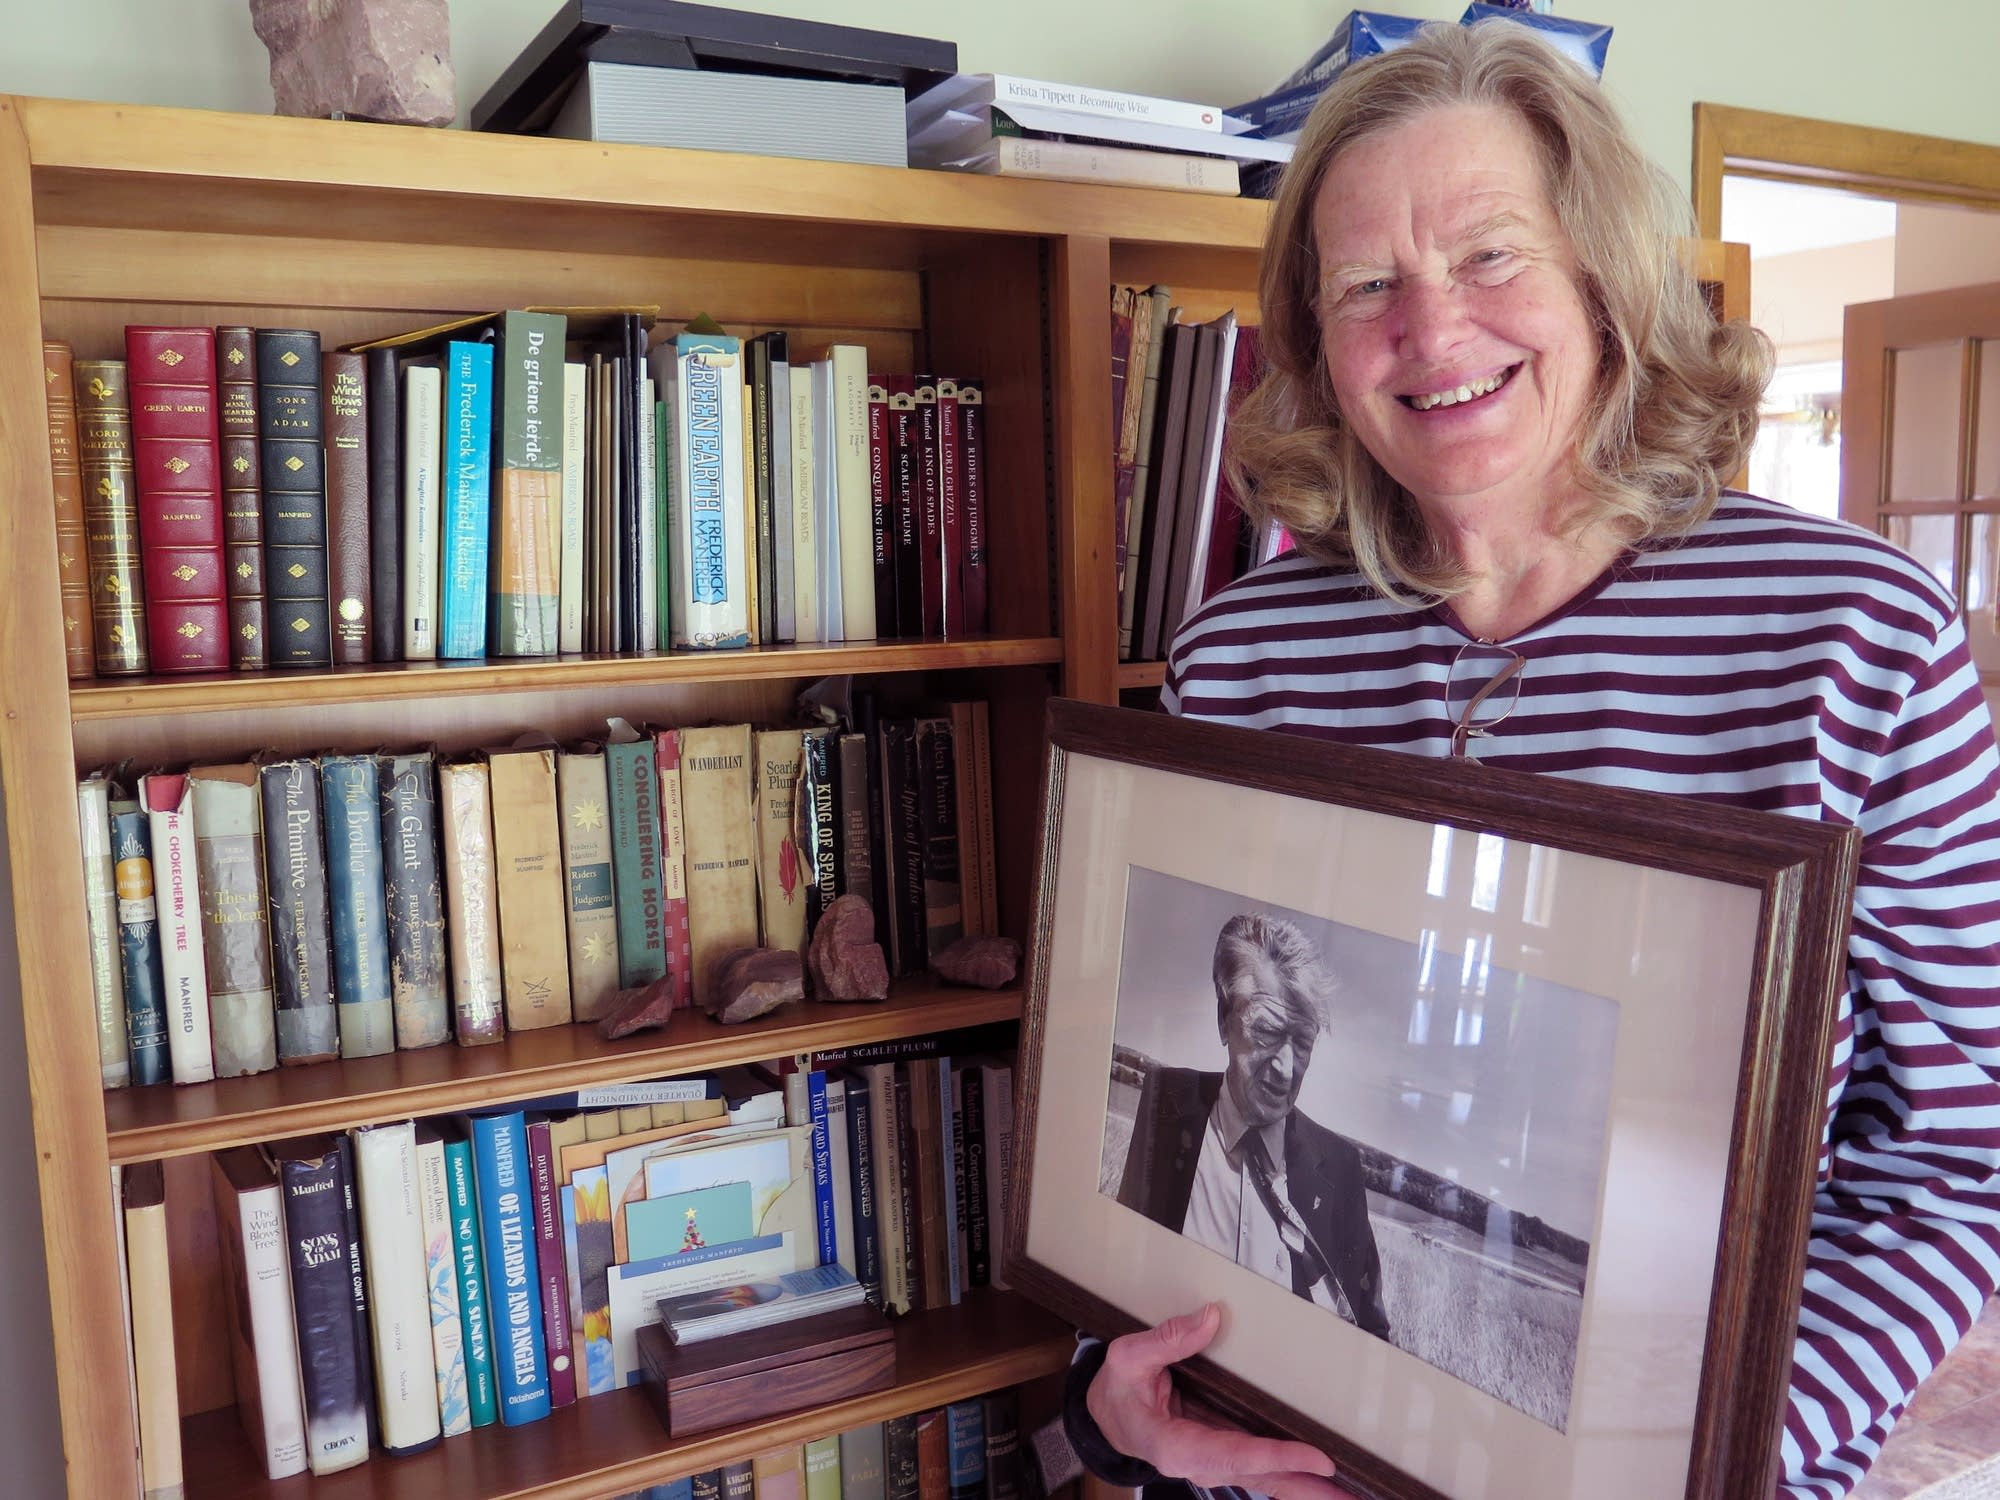 Freya Manfred holds a photo of her father, author Frederick Manfred.